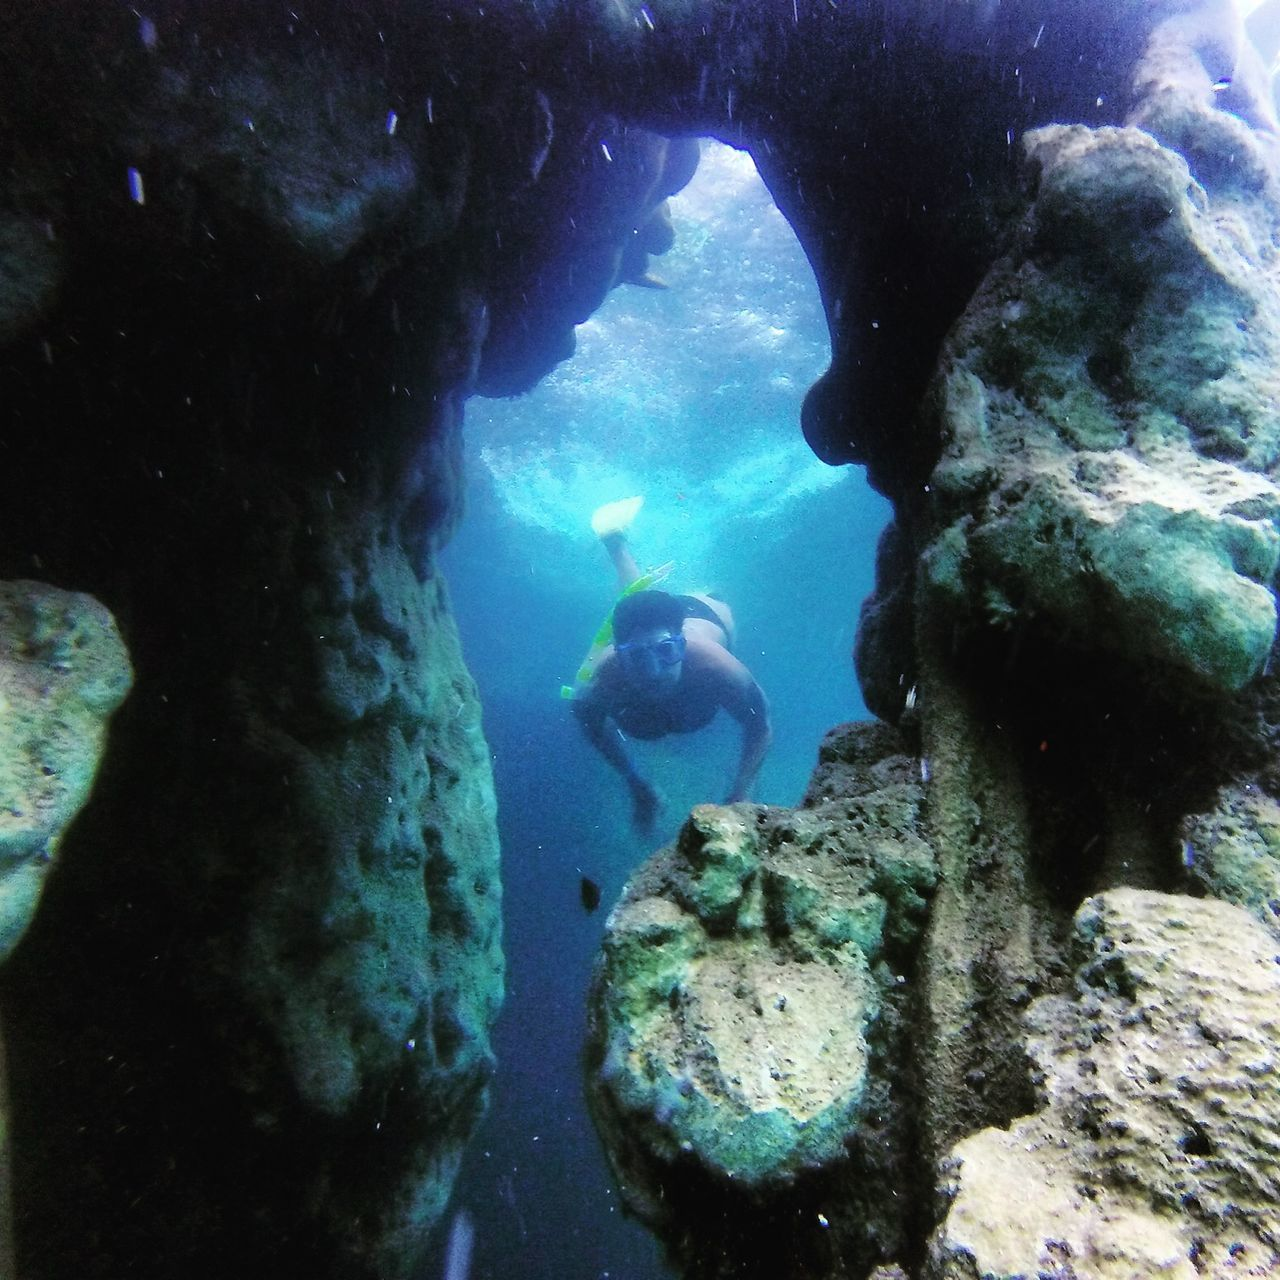 underwater, undersea, exploration, adventure, scuba diving, swimming, real people, rock - object, water, scuba diver, one person, nature, sea life, sea, men, beauty in nature, day, people